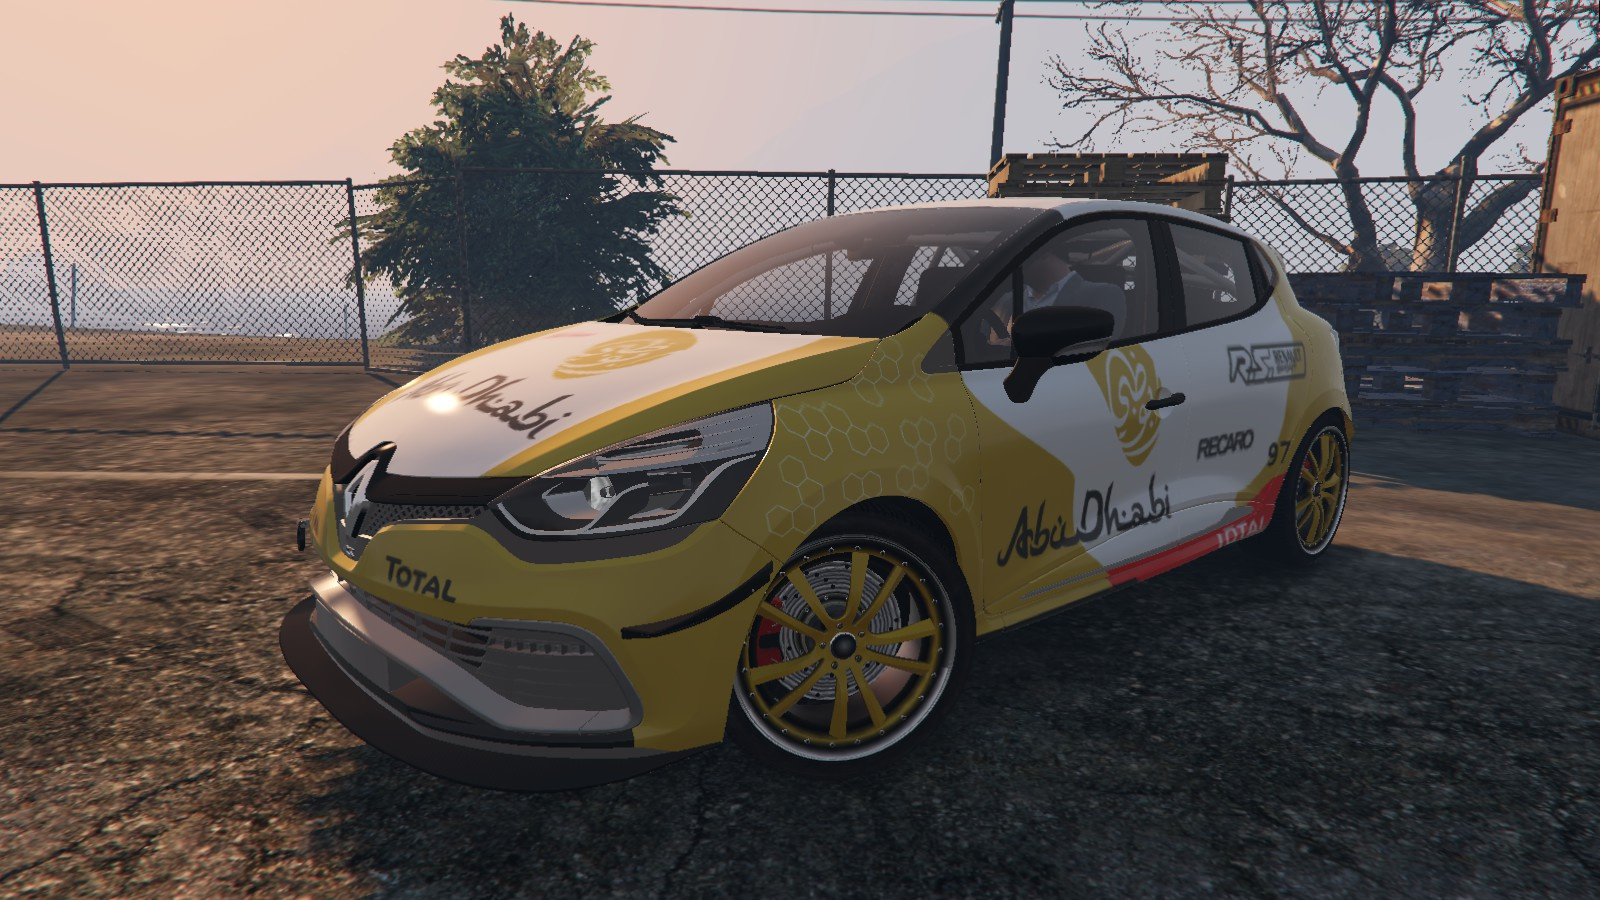 renault clio rs livery abu dhabi wrc design paintjob. Black Bedroom Furniture Sets. Home Design Ideas